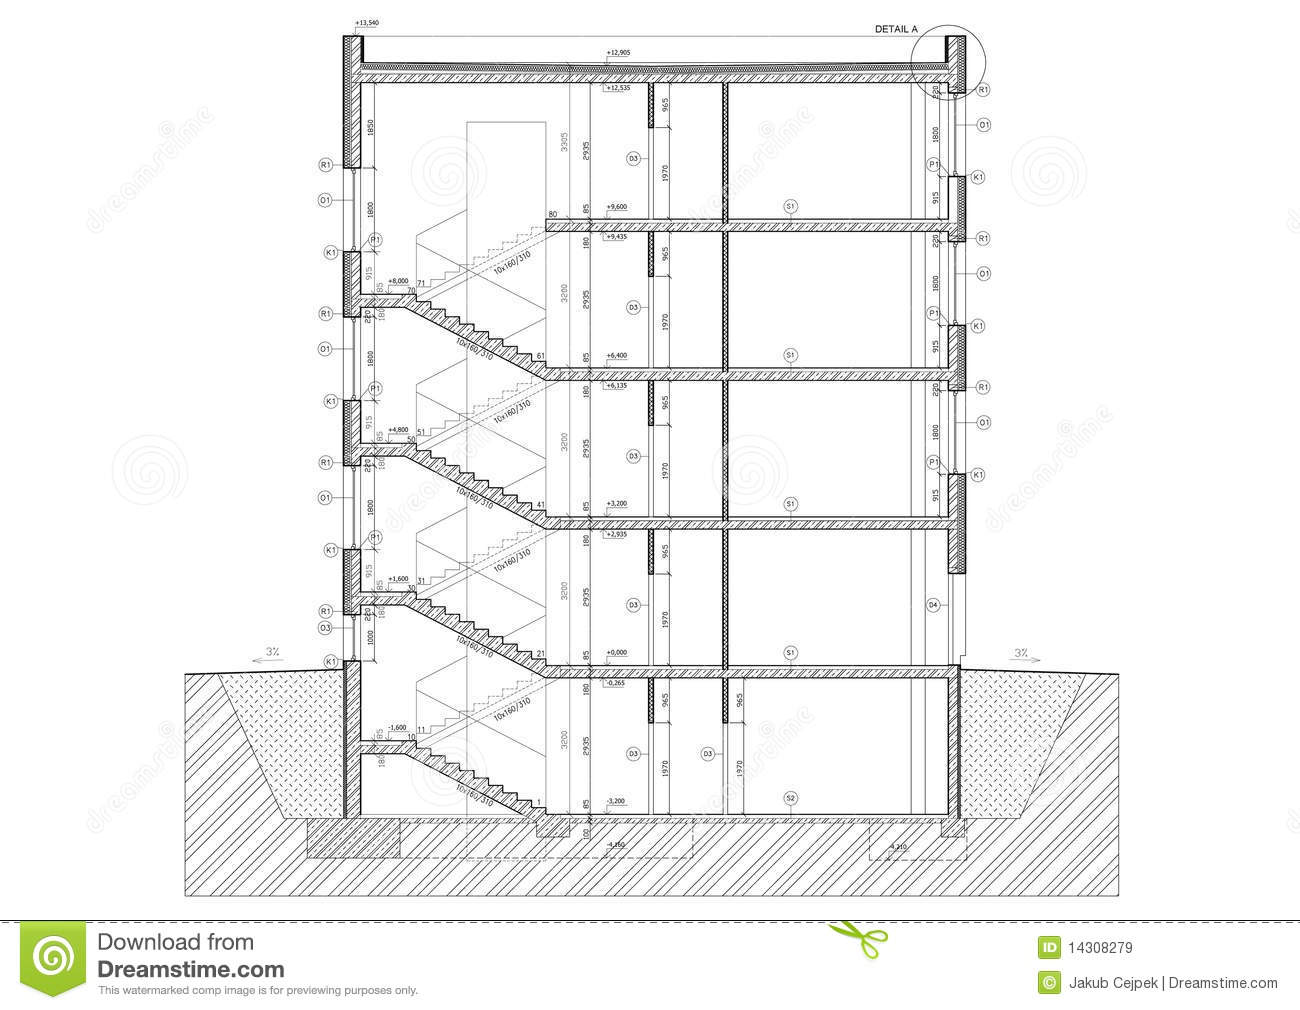 27cf628b9e14cc03fa75d52fd762be59 likewise 2010 01 01 archive furthermore Plans as well D 449 besides D325. on exterior elevations